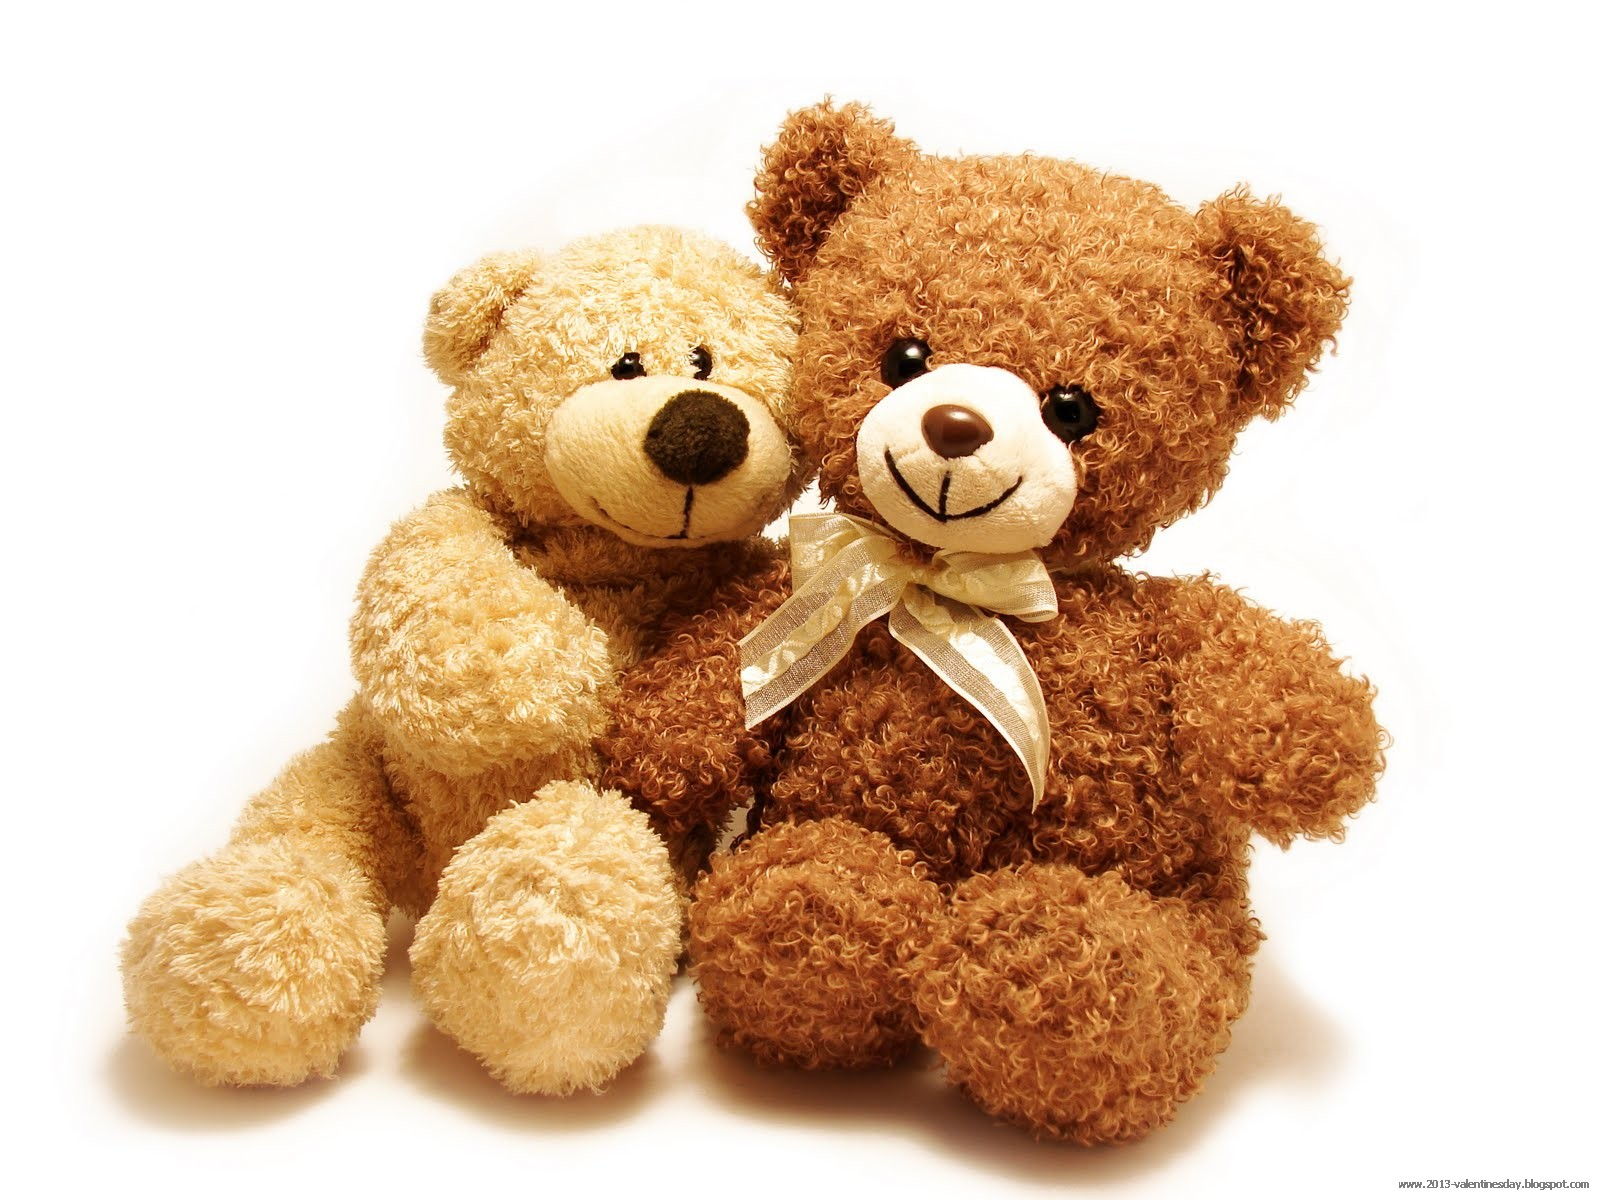 Valentines day Teddy bear gift ideas n HD wallpapers | I Love You ...